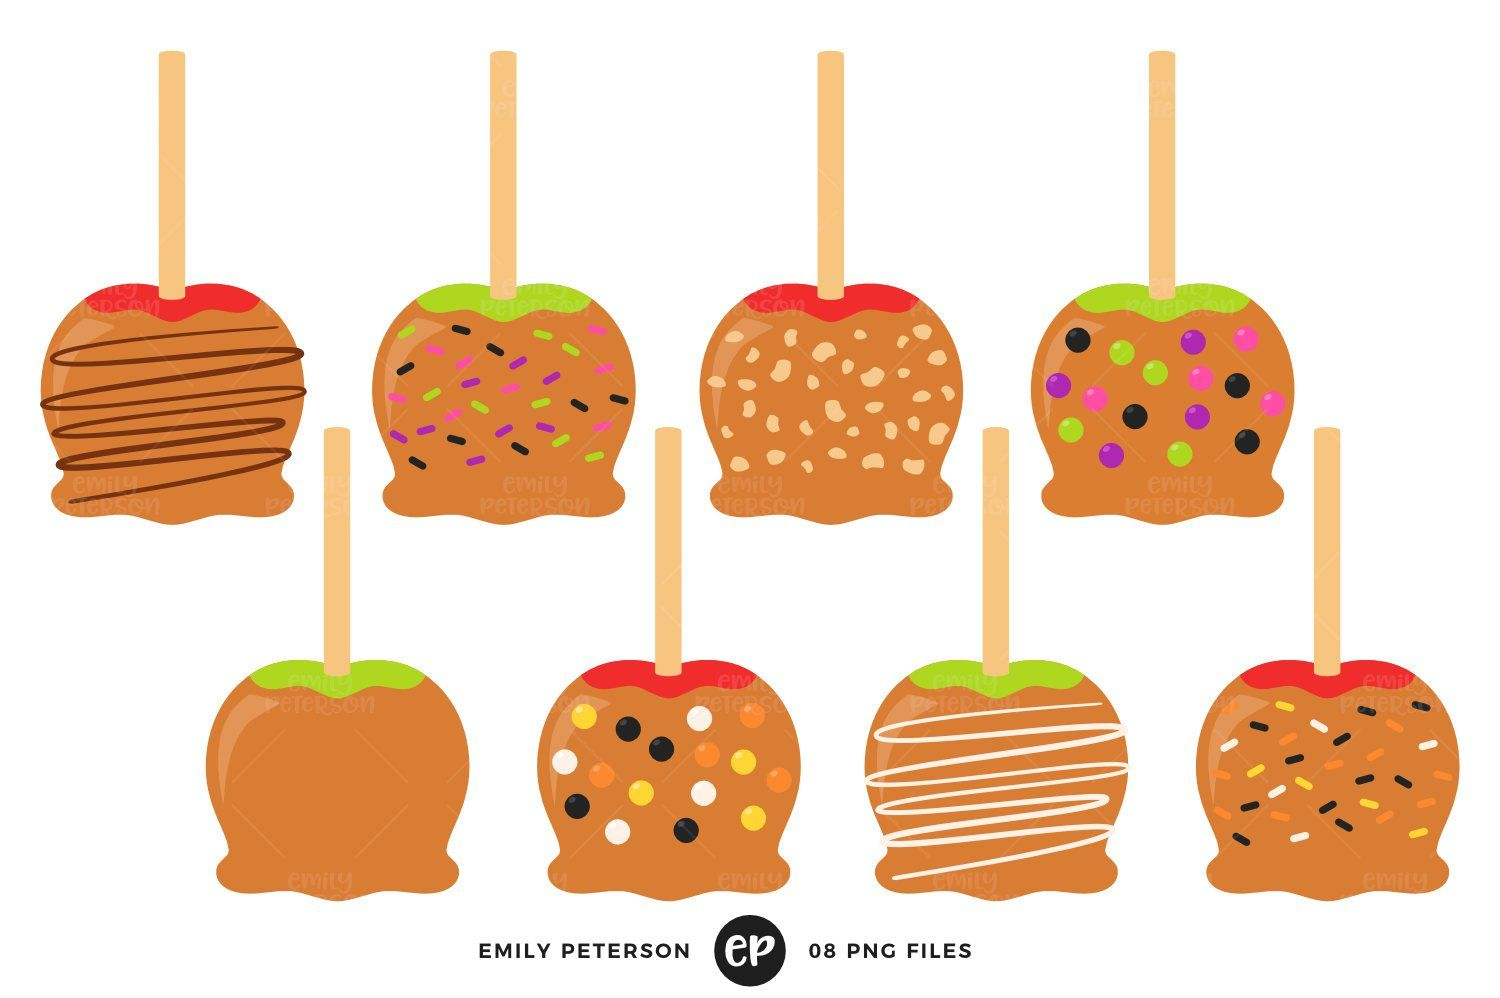 Caramel Apples Clip Art Candy Apples Clipart Halloween Candy Etsy Caramel Apples Apple Clip Art Candy Apples